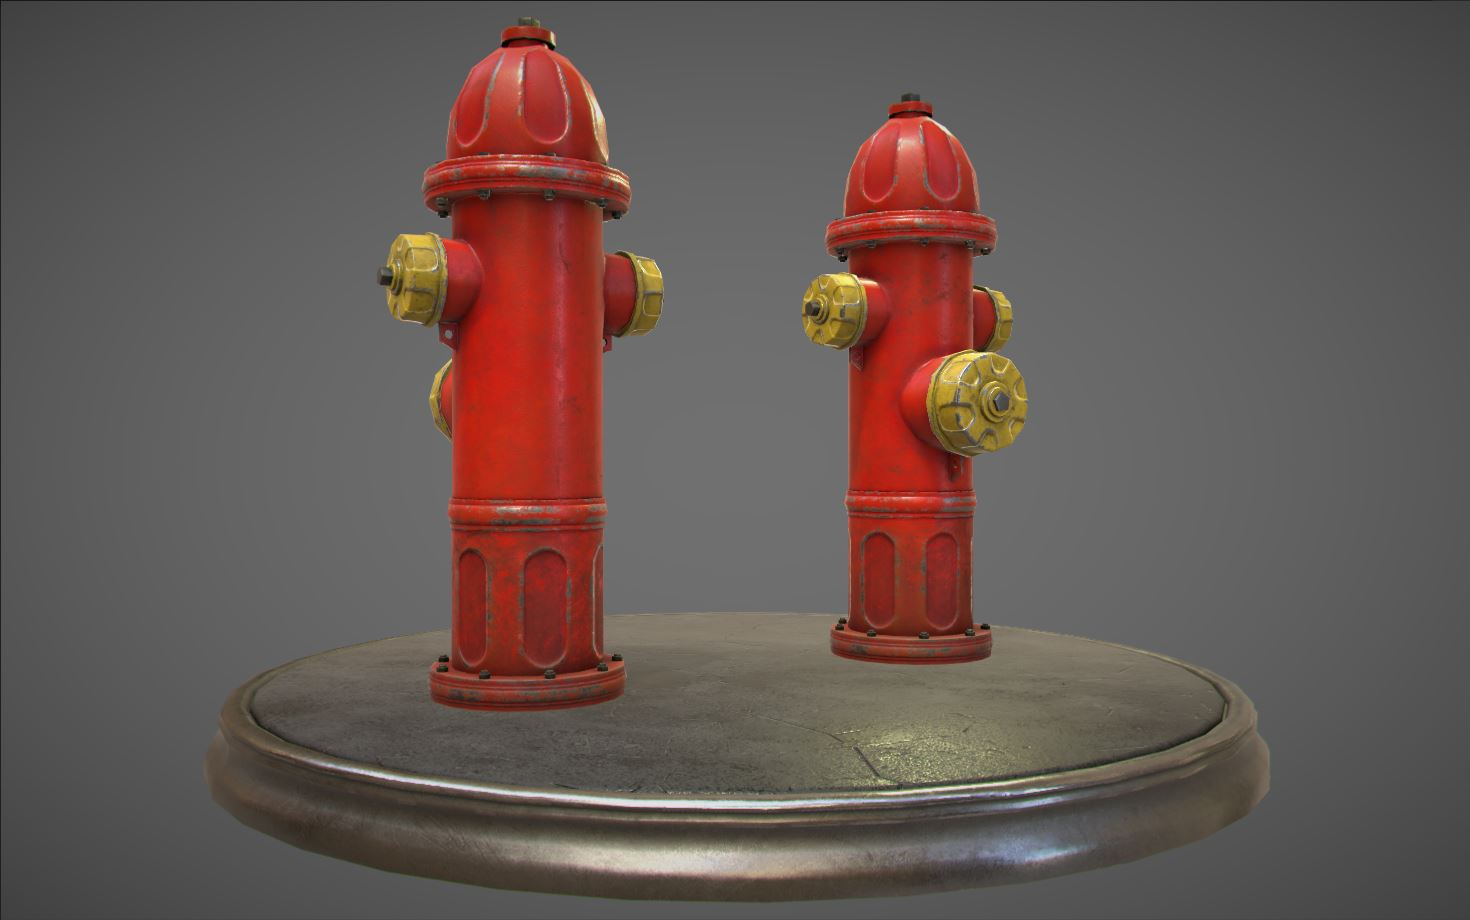 Hydrant for Asset Store